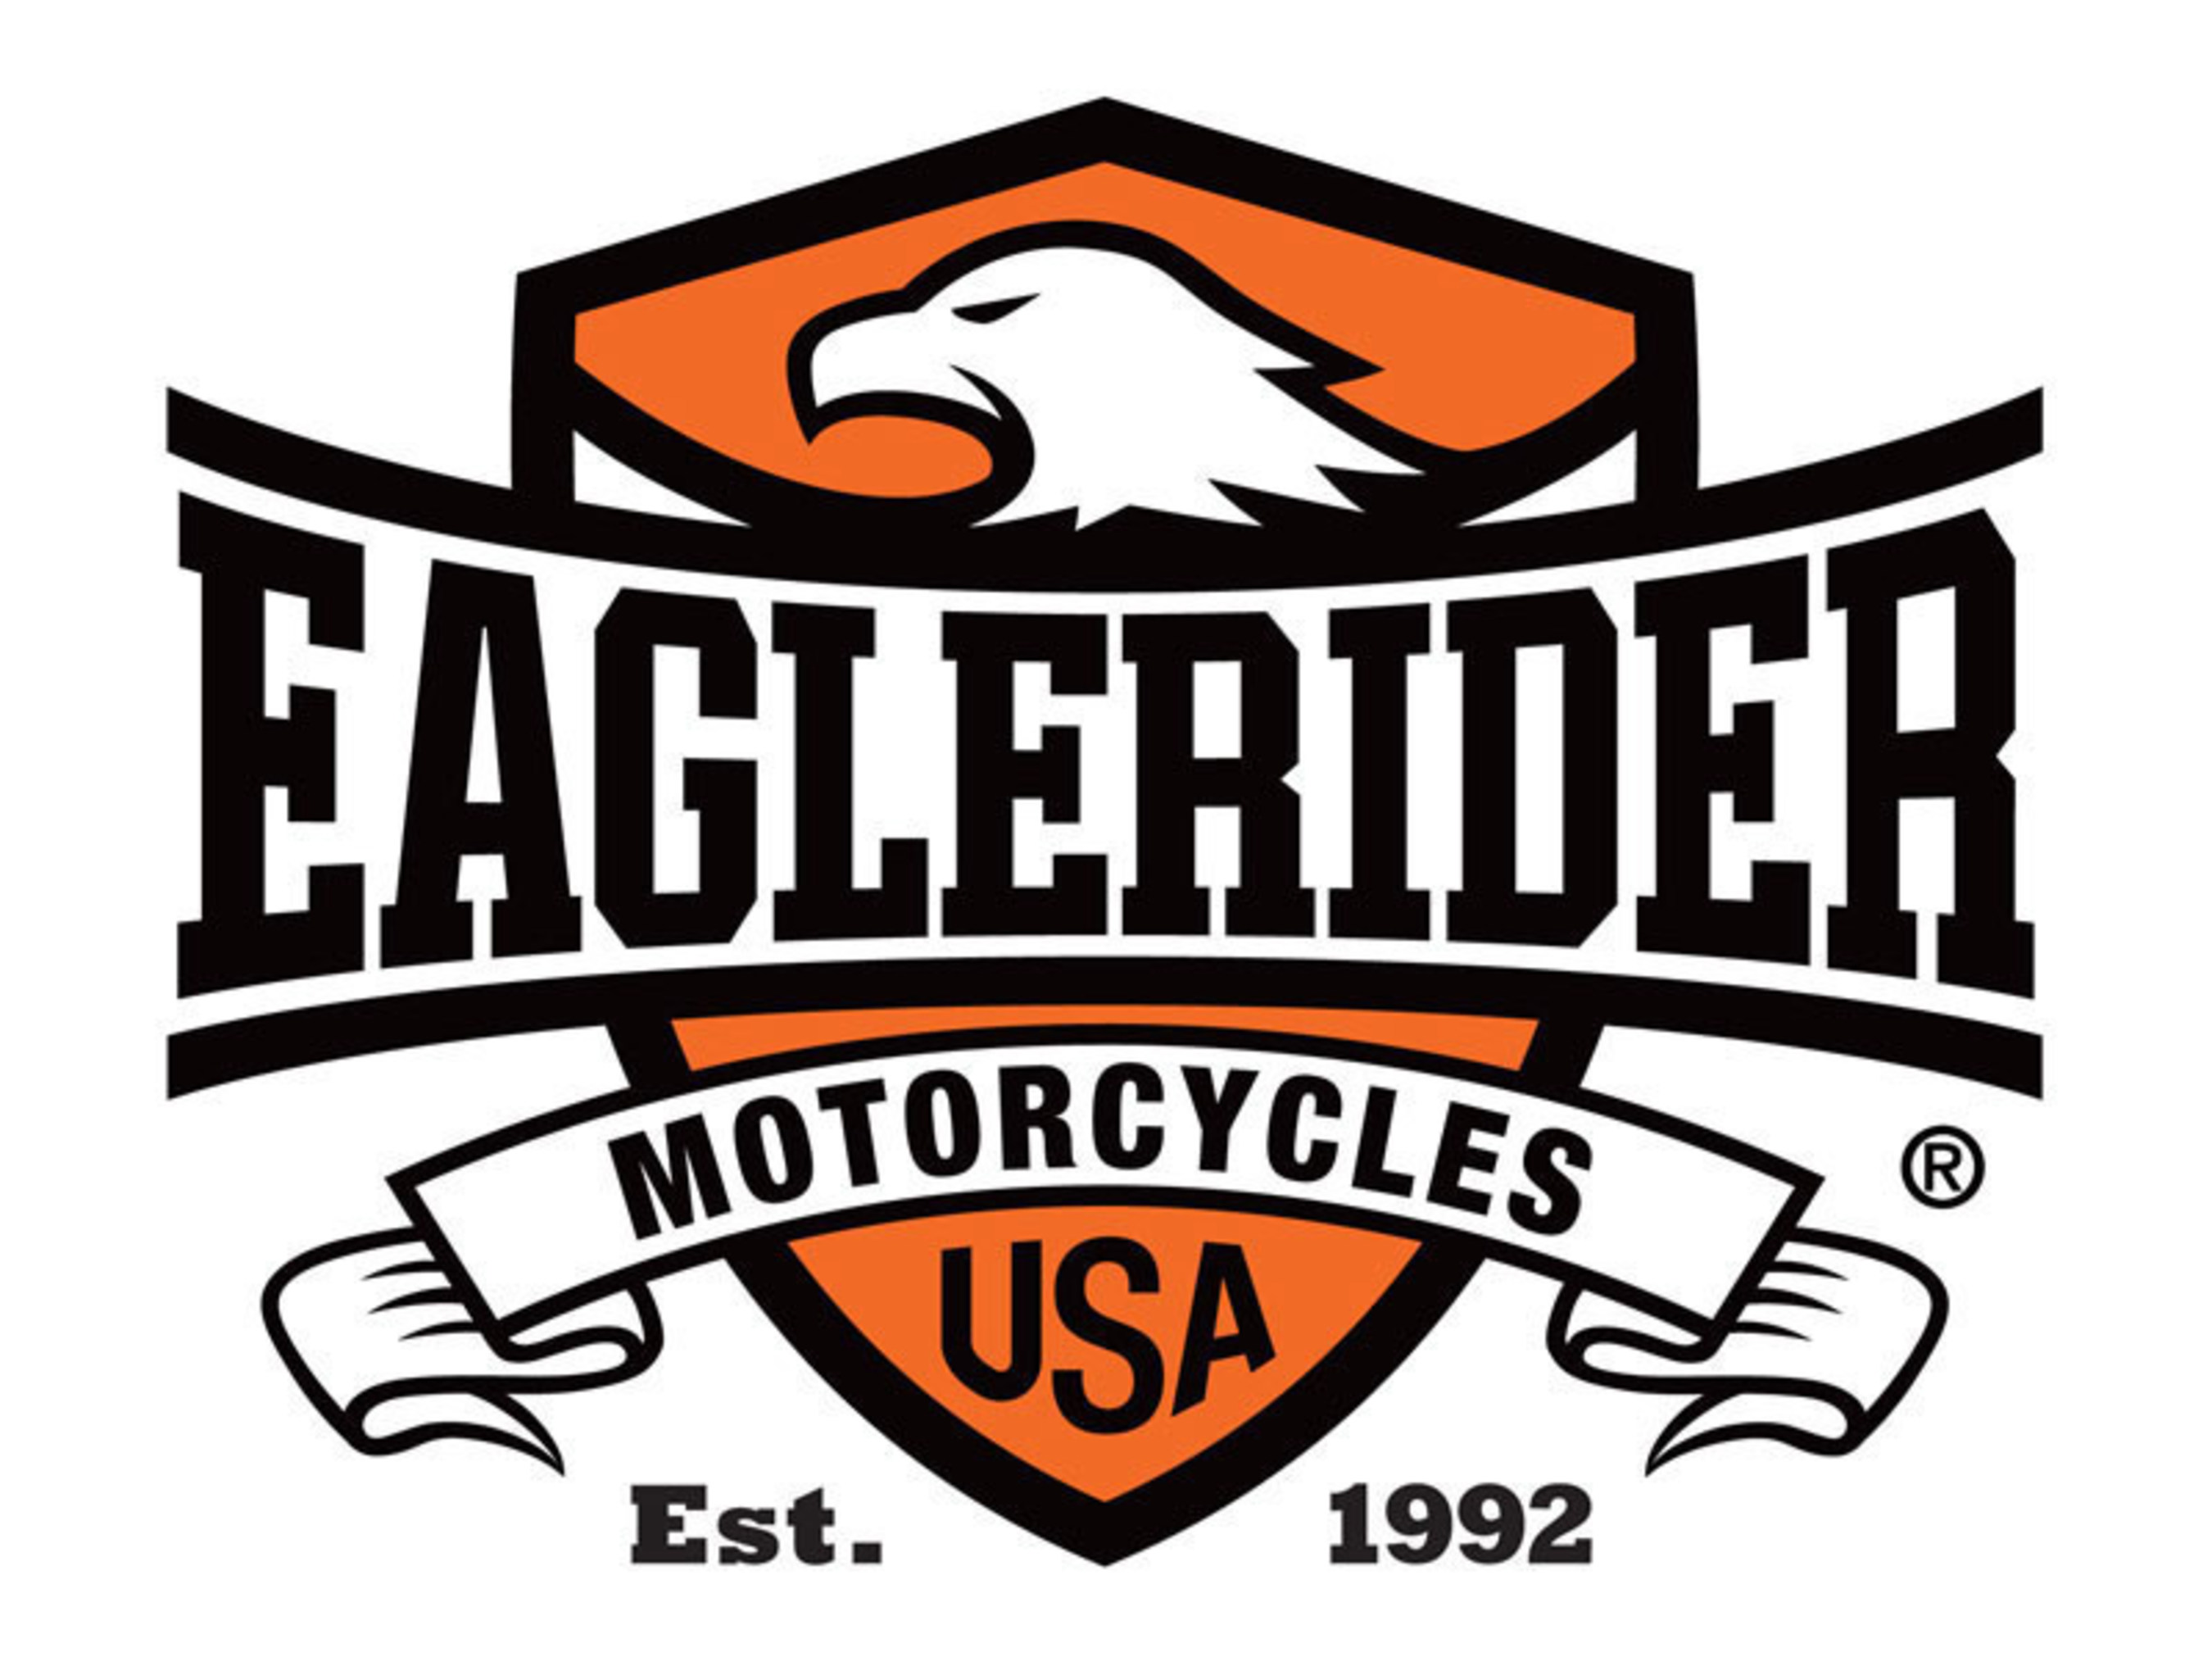 EagleRider Invites All to Celebrate 2015 Sturgis Motorcycle Rally and Founder Chris McIntyre's